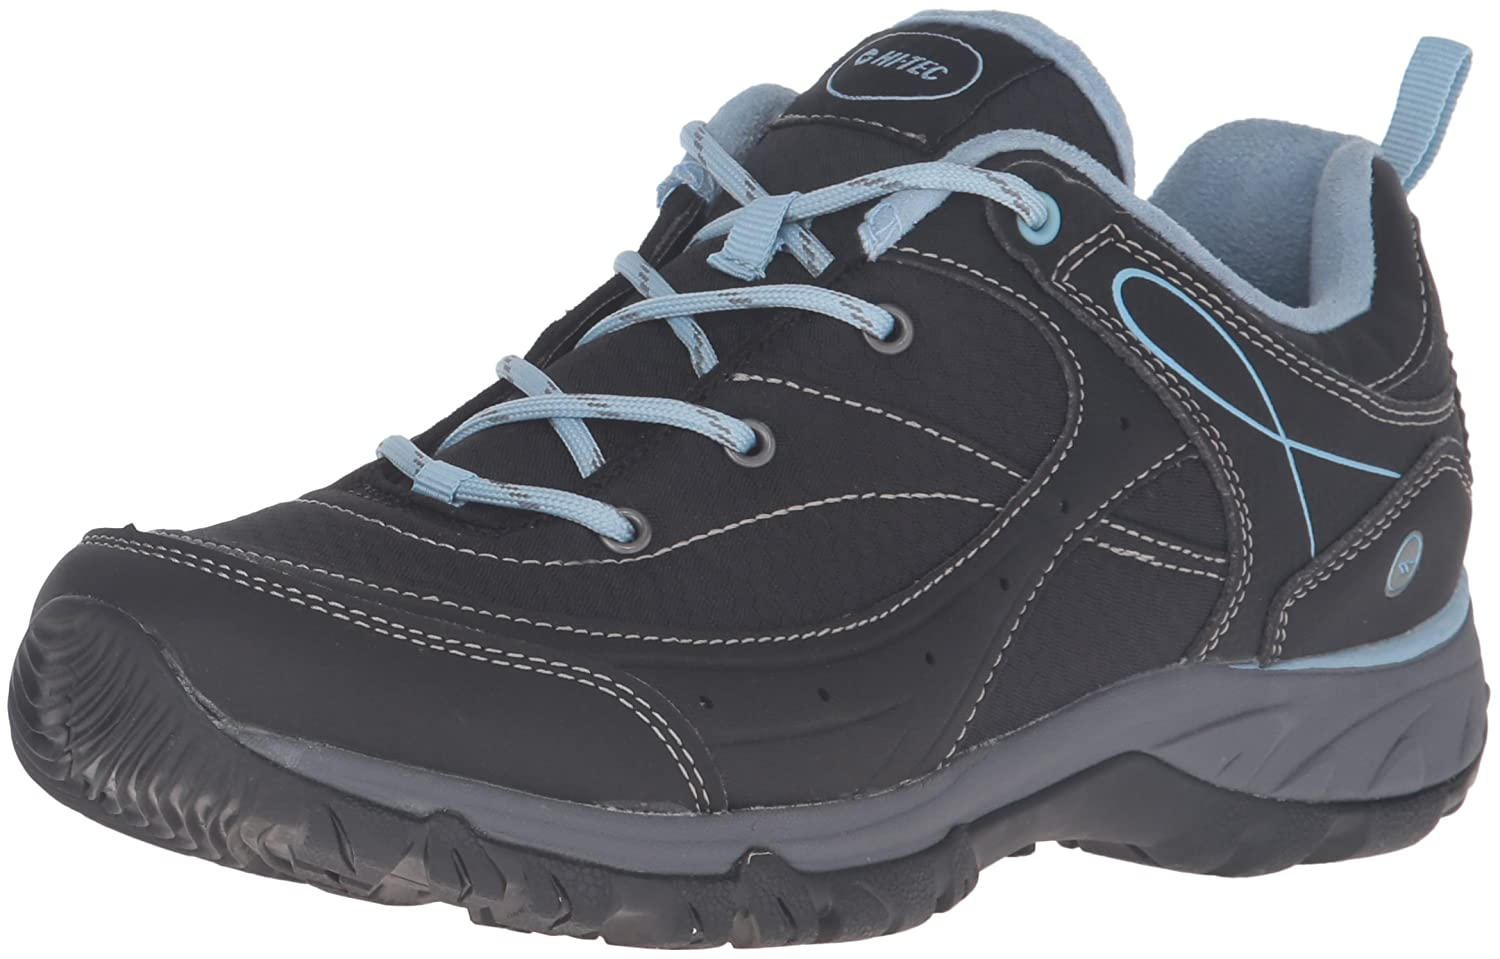 Hi-Tec I-W Women's Equilibrio Bijou Low I-W Hi-Tec Hiking Shoe B01A0FGVOI 6.5 B(M) US|Black/Forget Me Not eb93eb